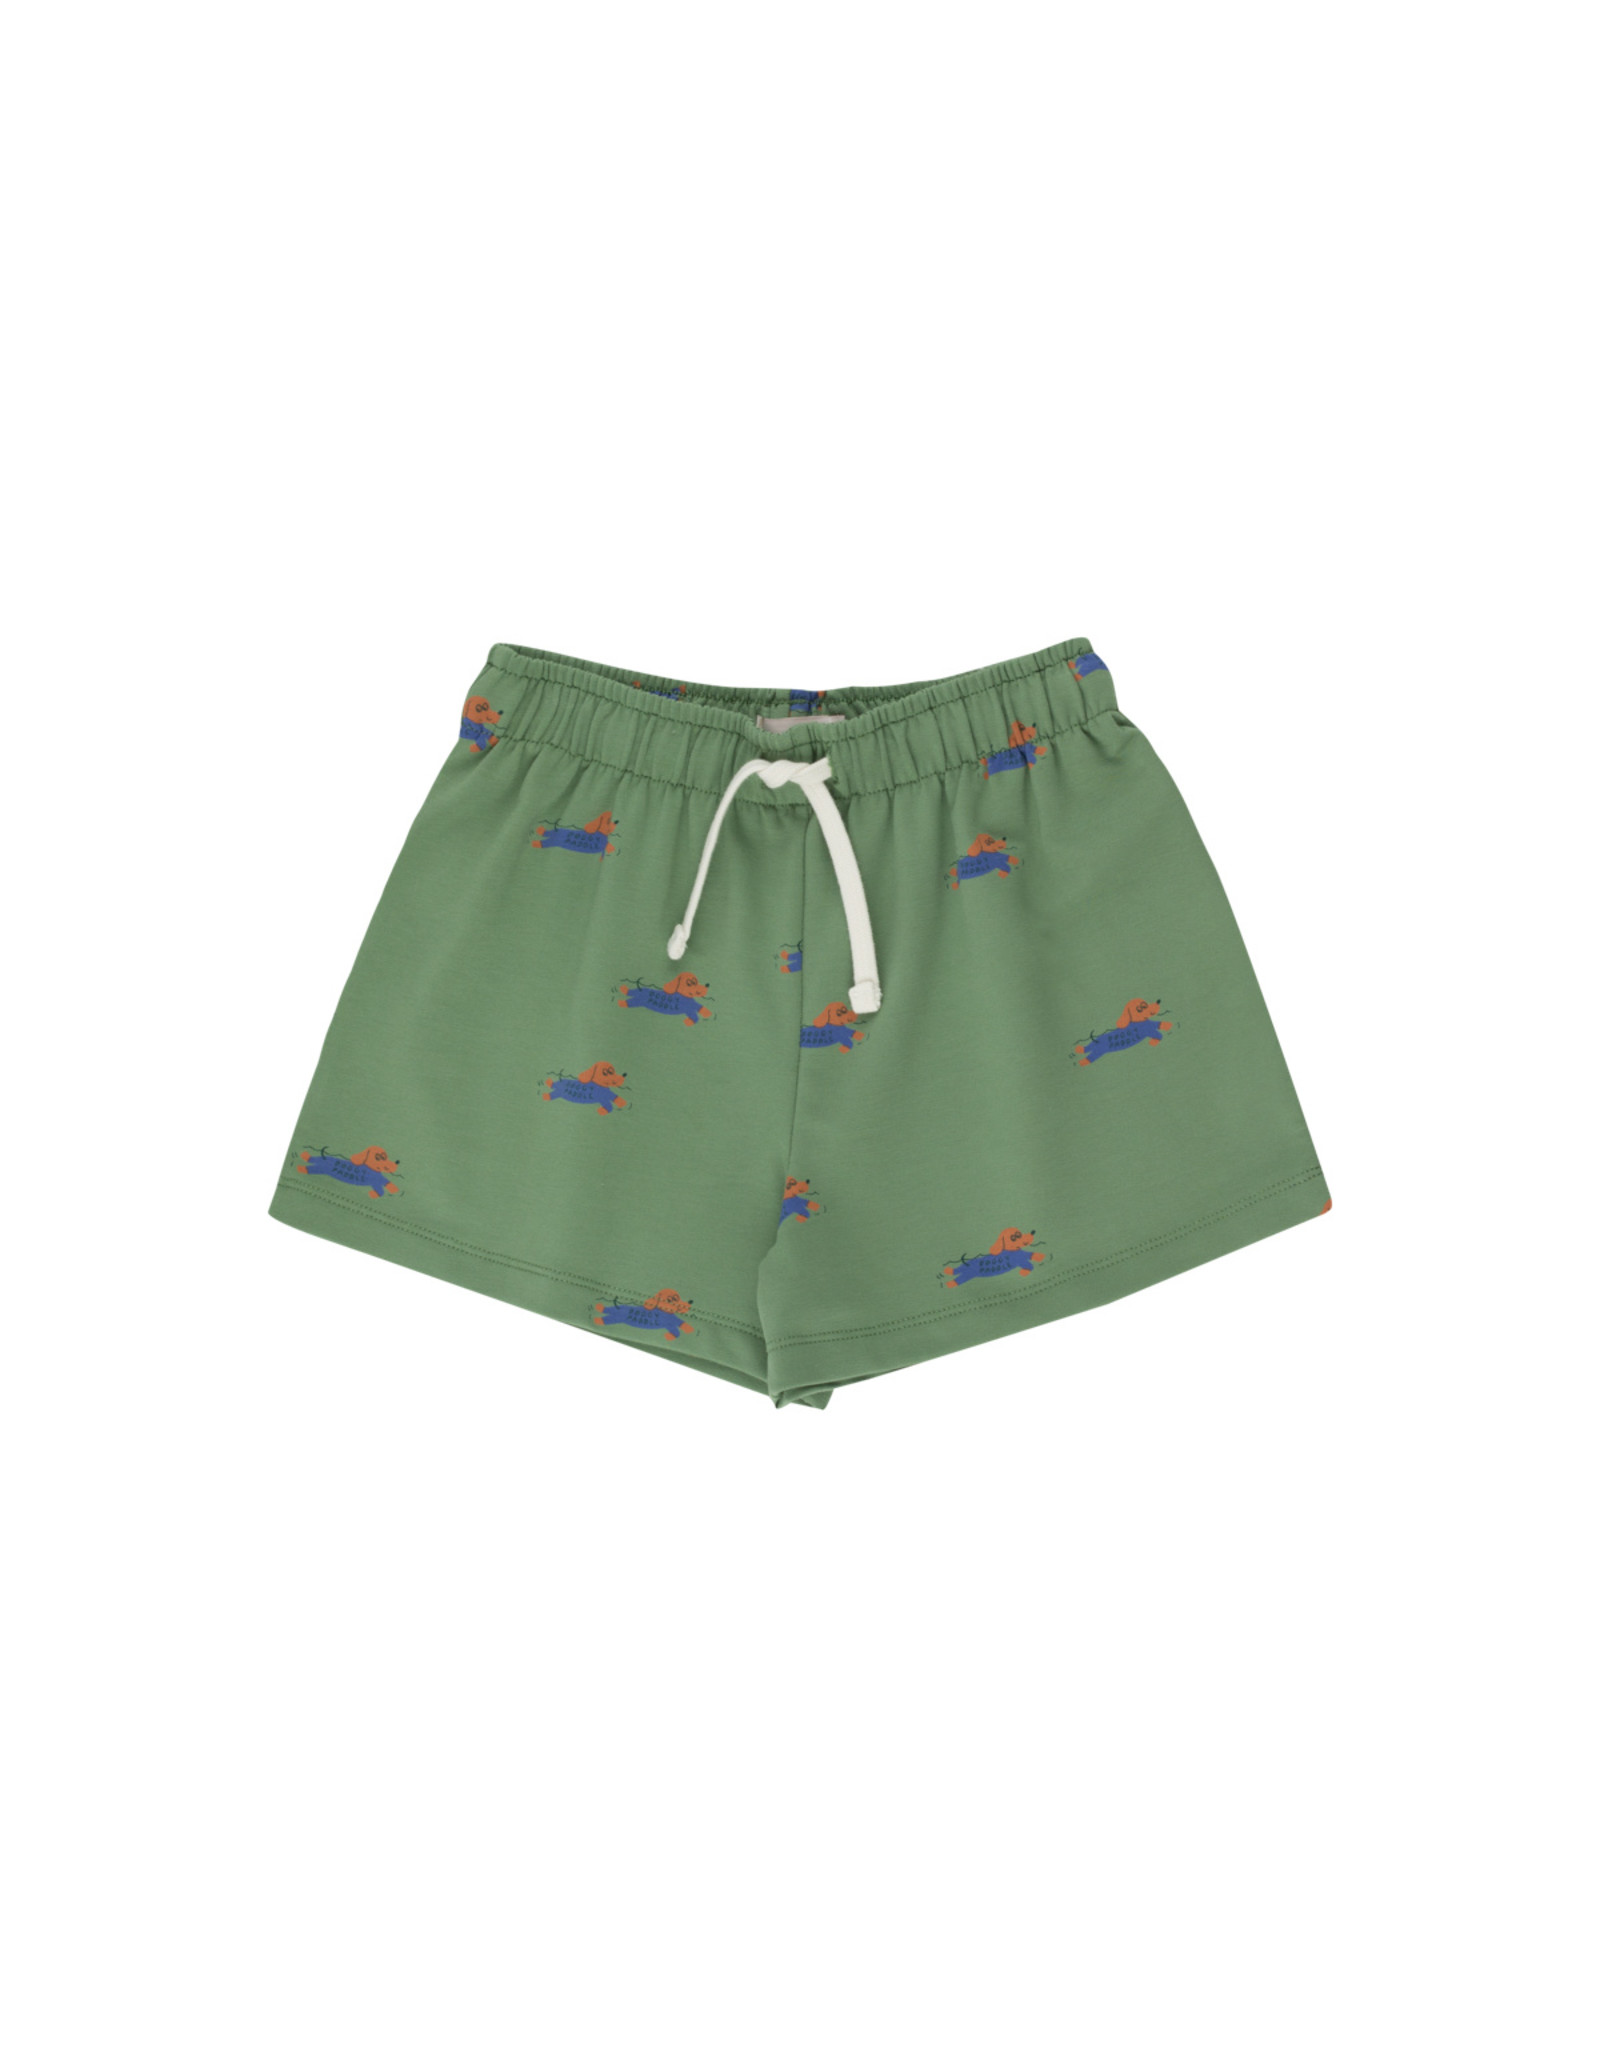 Tinycottons Doggy Paddle Short